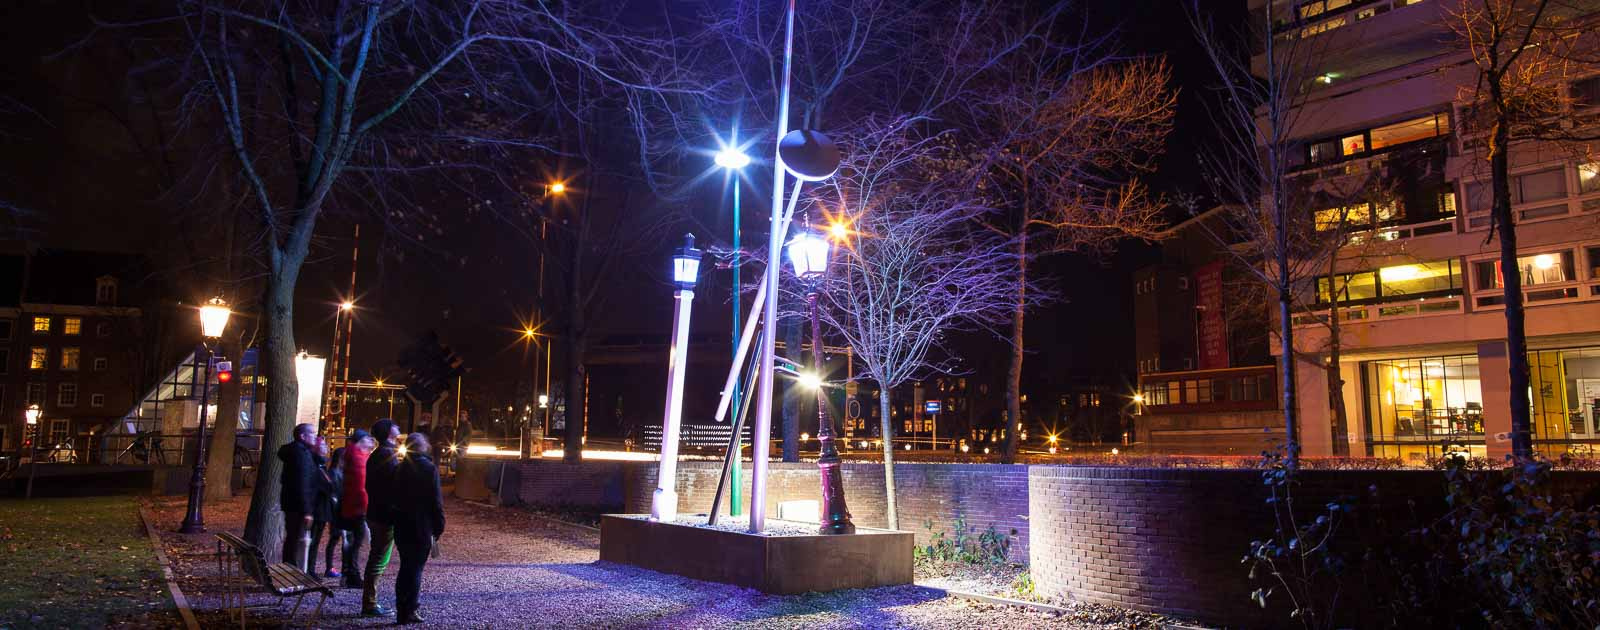 Street Light Evolution - Koen Fraijman